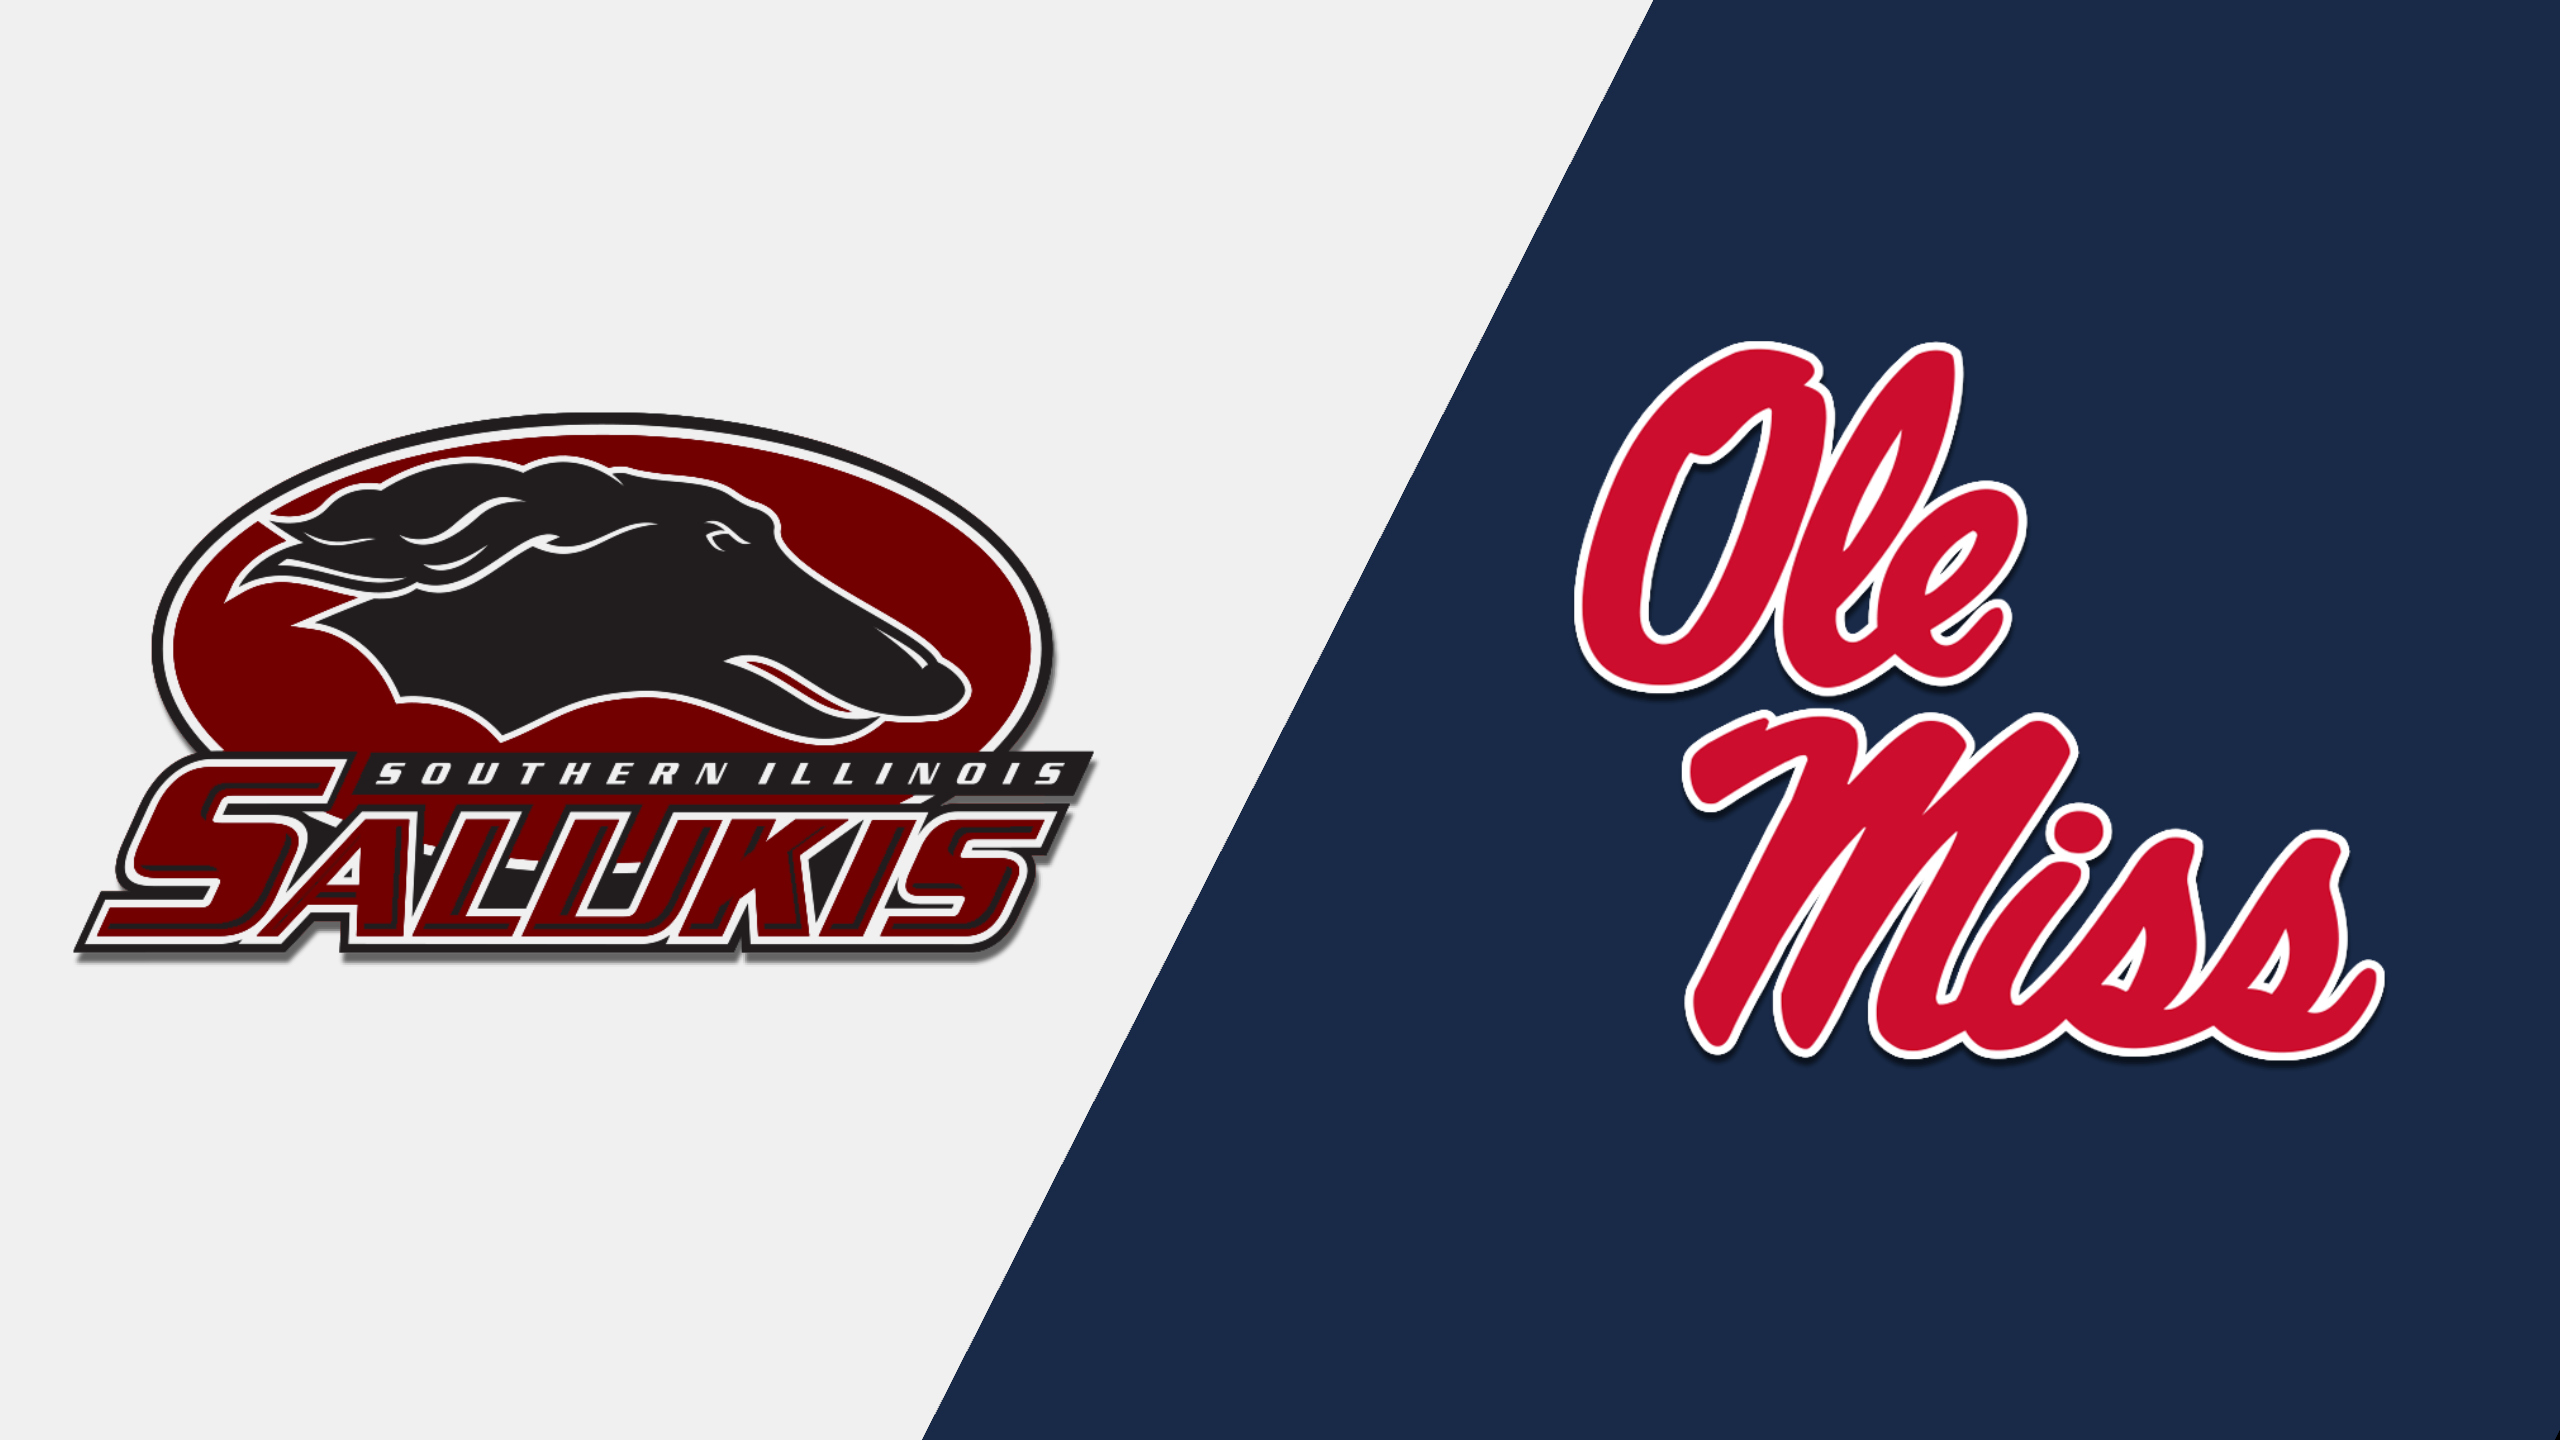 Southern Illinois vs. Ole Miss (re-air)